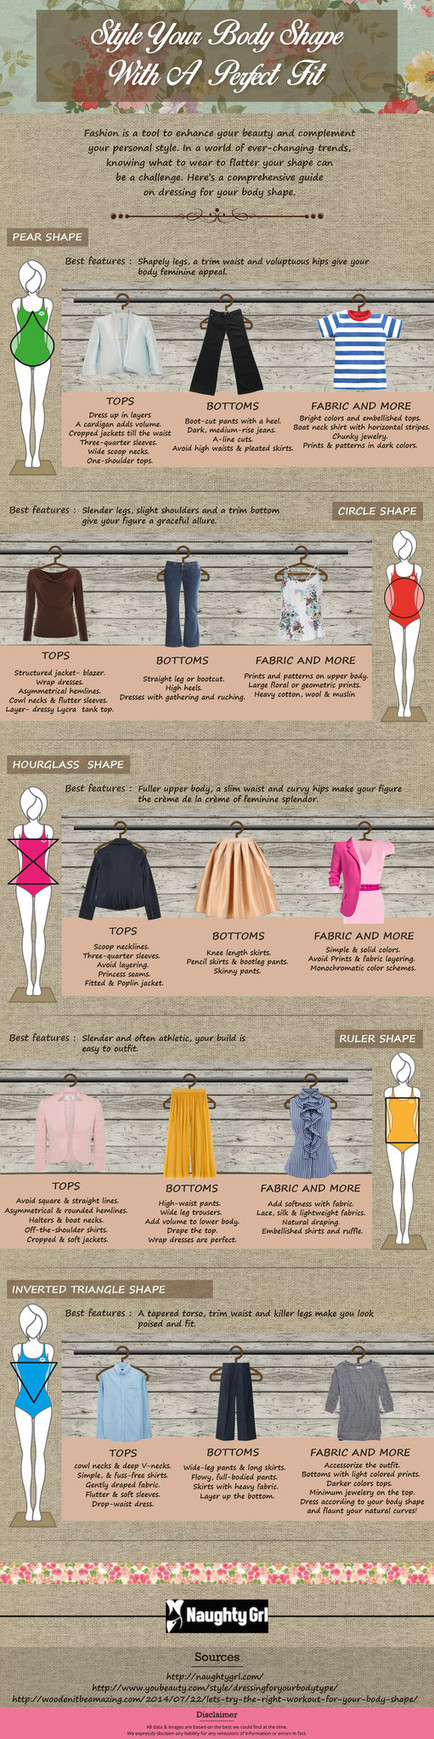 How to Style your Body Shape with a Perfect Fit | All Infographics | Scoop.it